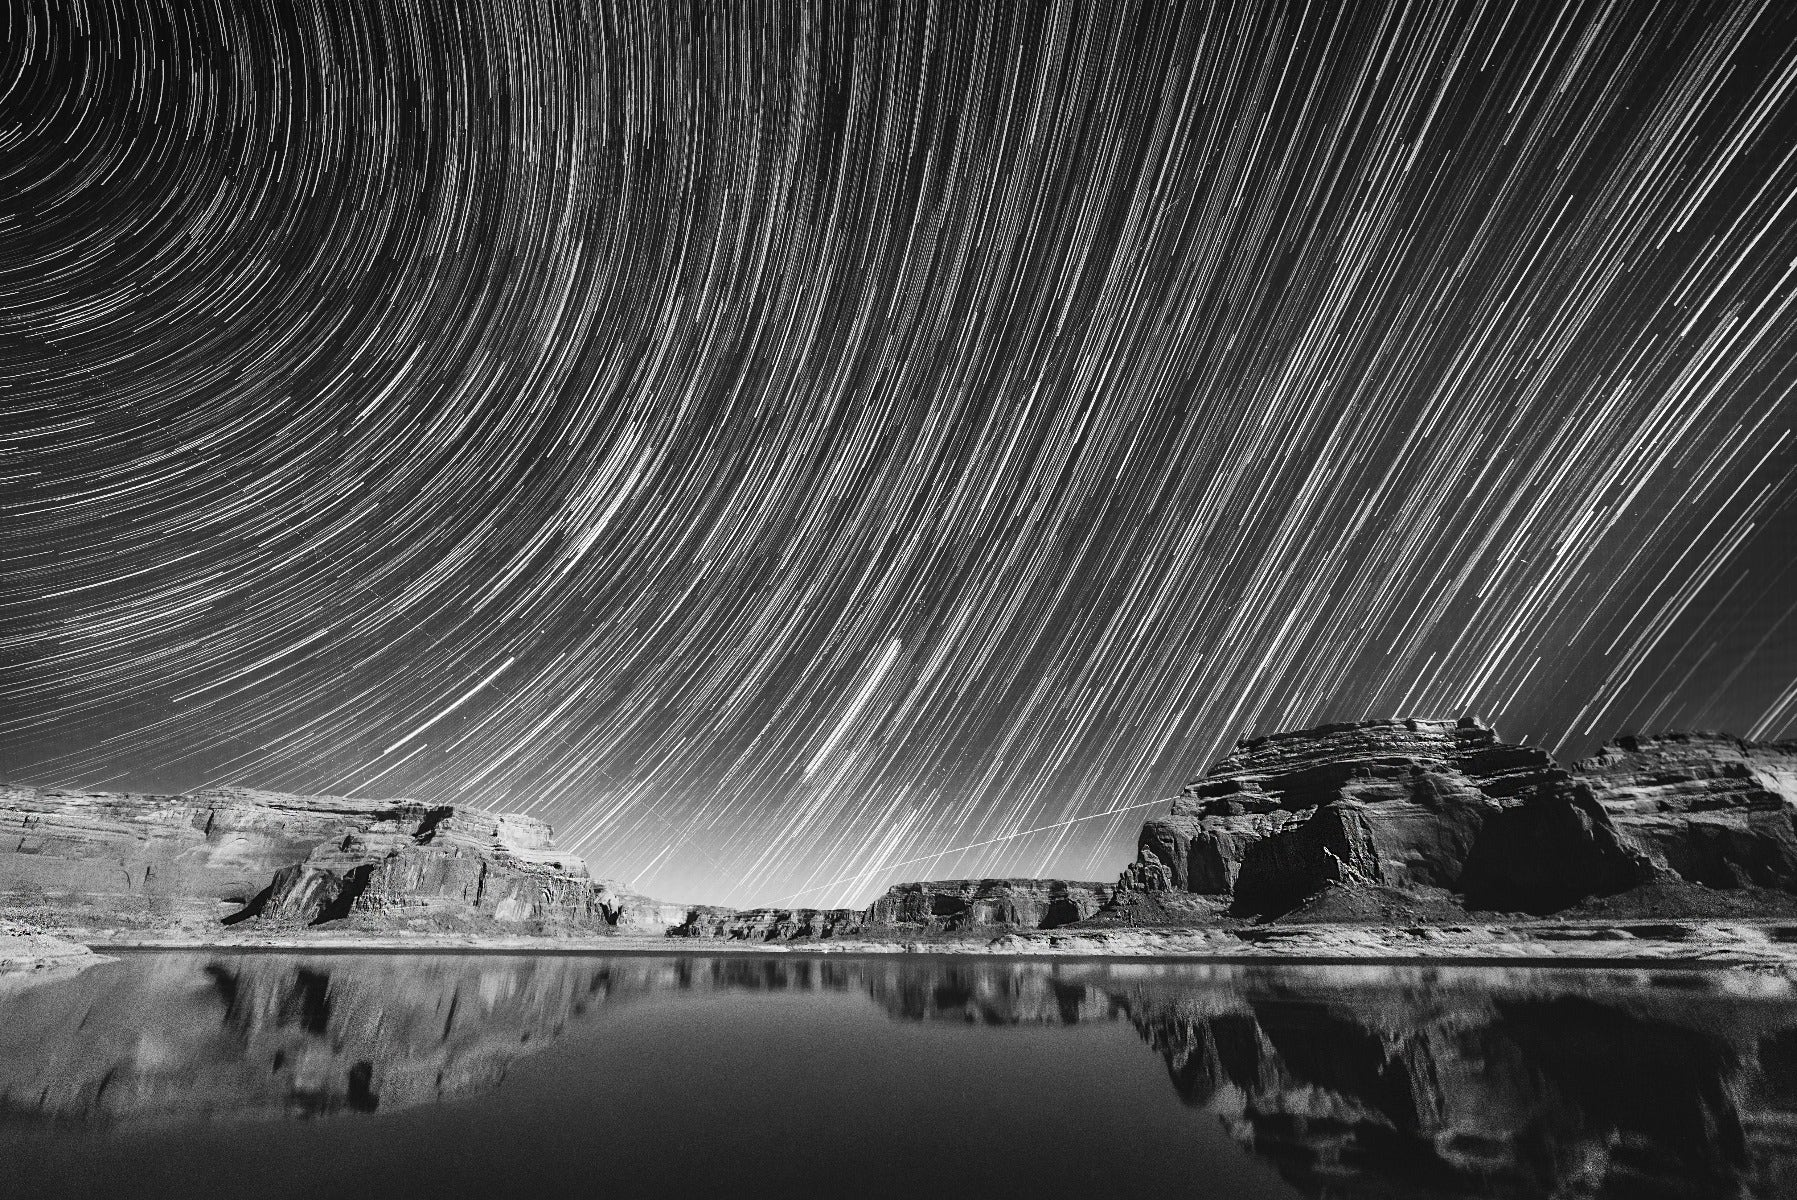 Star trails over body of water